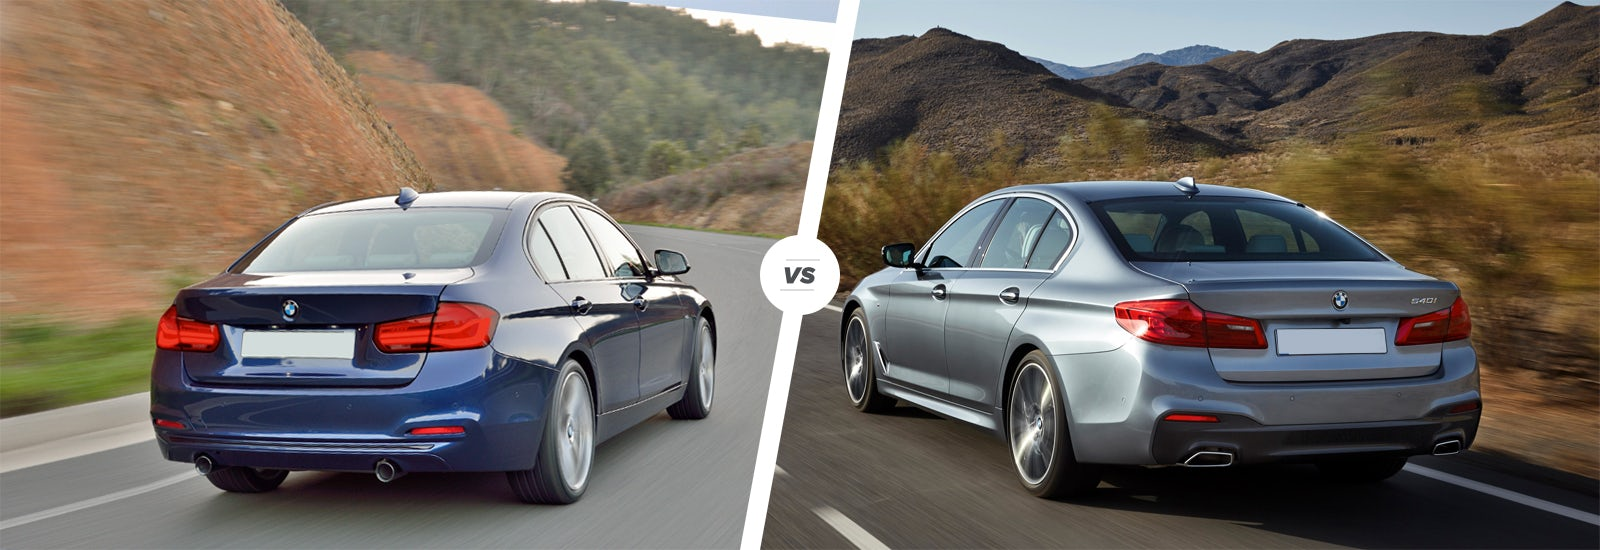 BMW Series Vs Series Which Should You Buy Carwow - Bmw 3i series